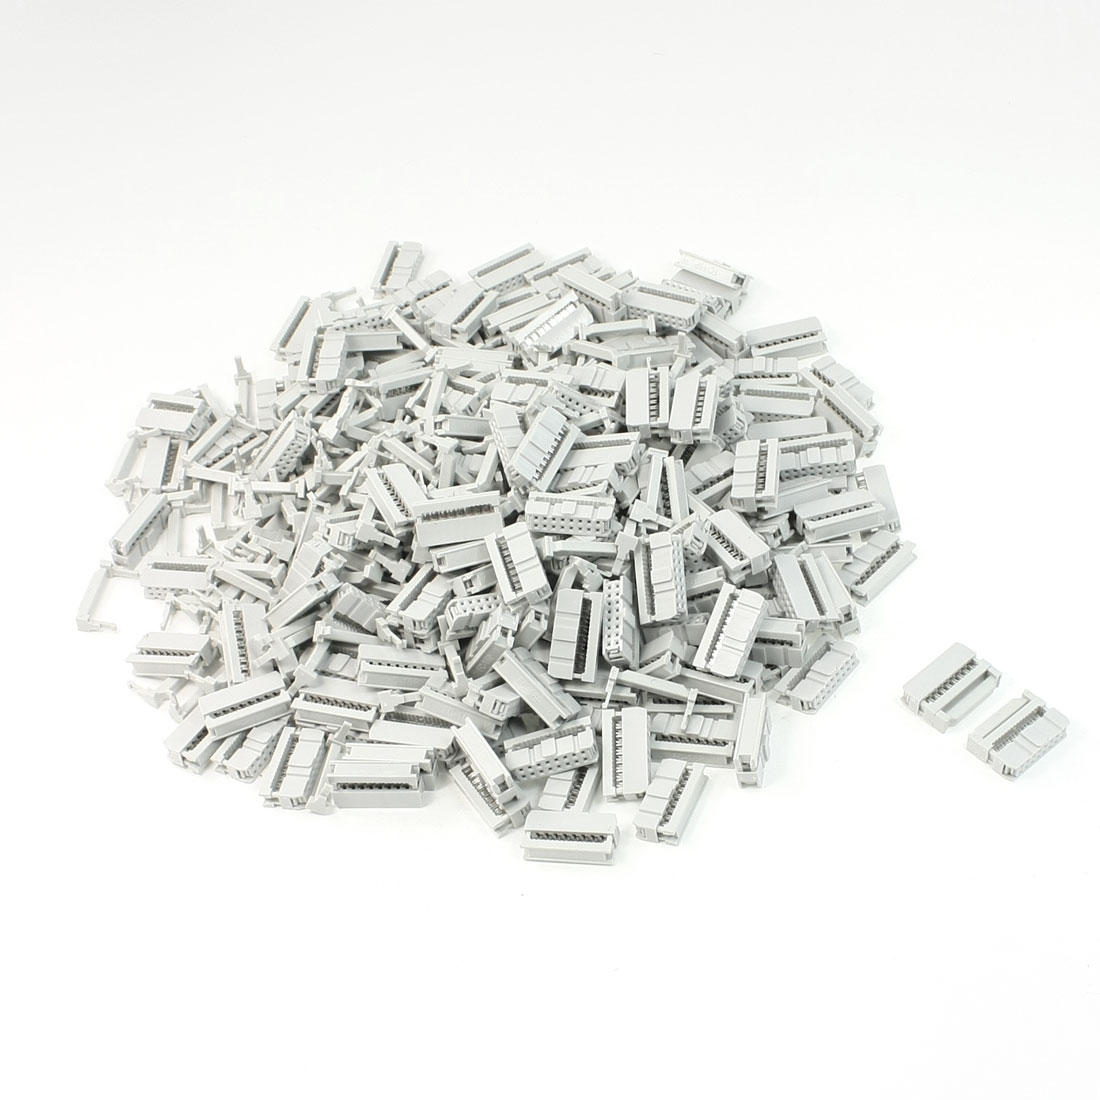 200 Pcs 2 Rows 16 Pin IDC Socket Connector Male Header 2.2mm FC-16P Light Gray